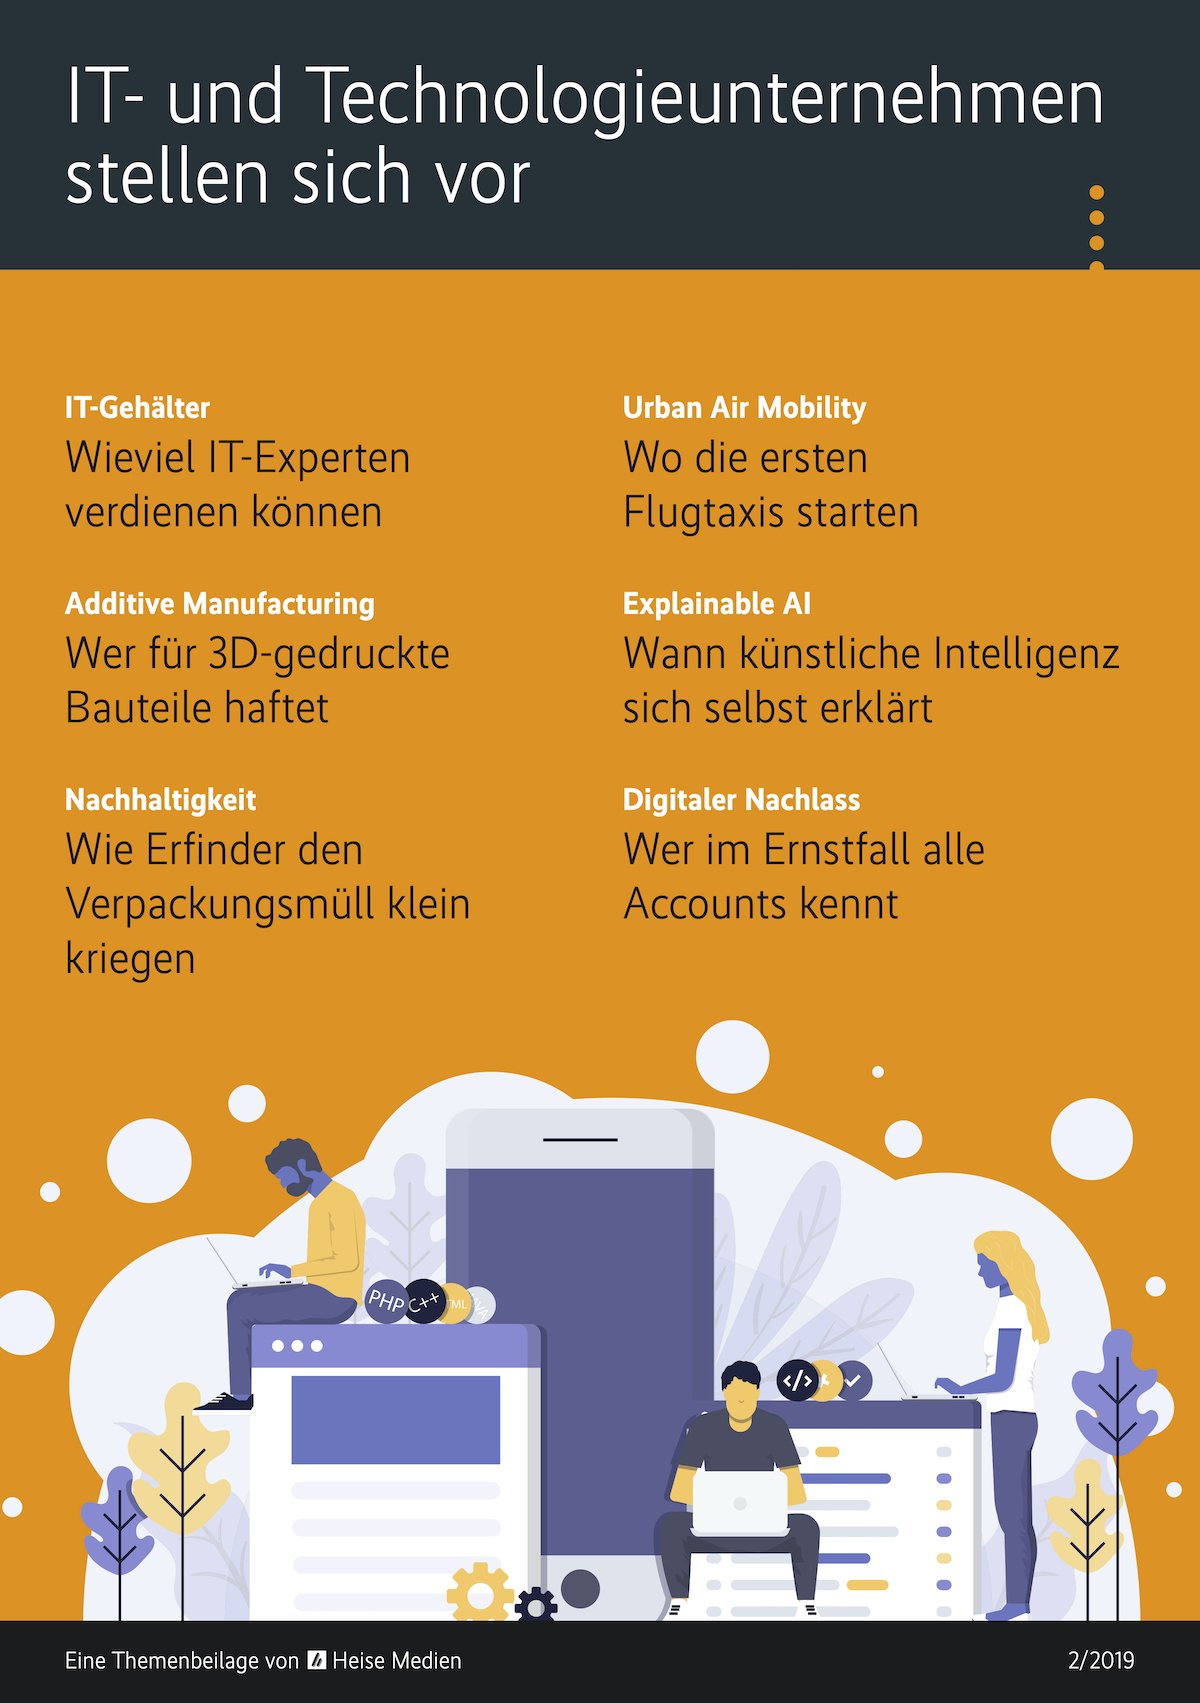 © just 4 business GmbH – Heise Medien GmbH & Co. KG